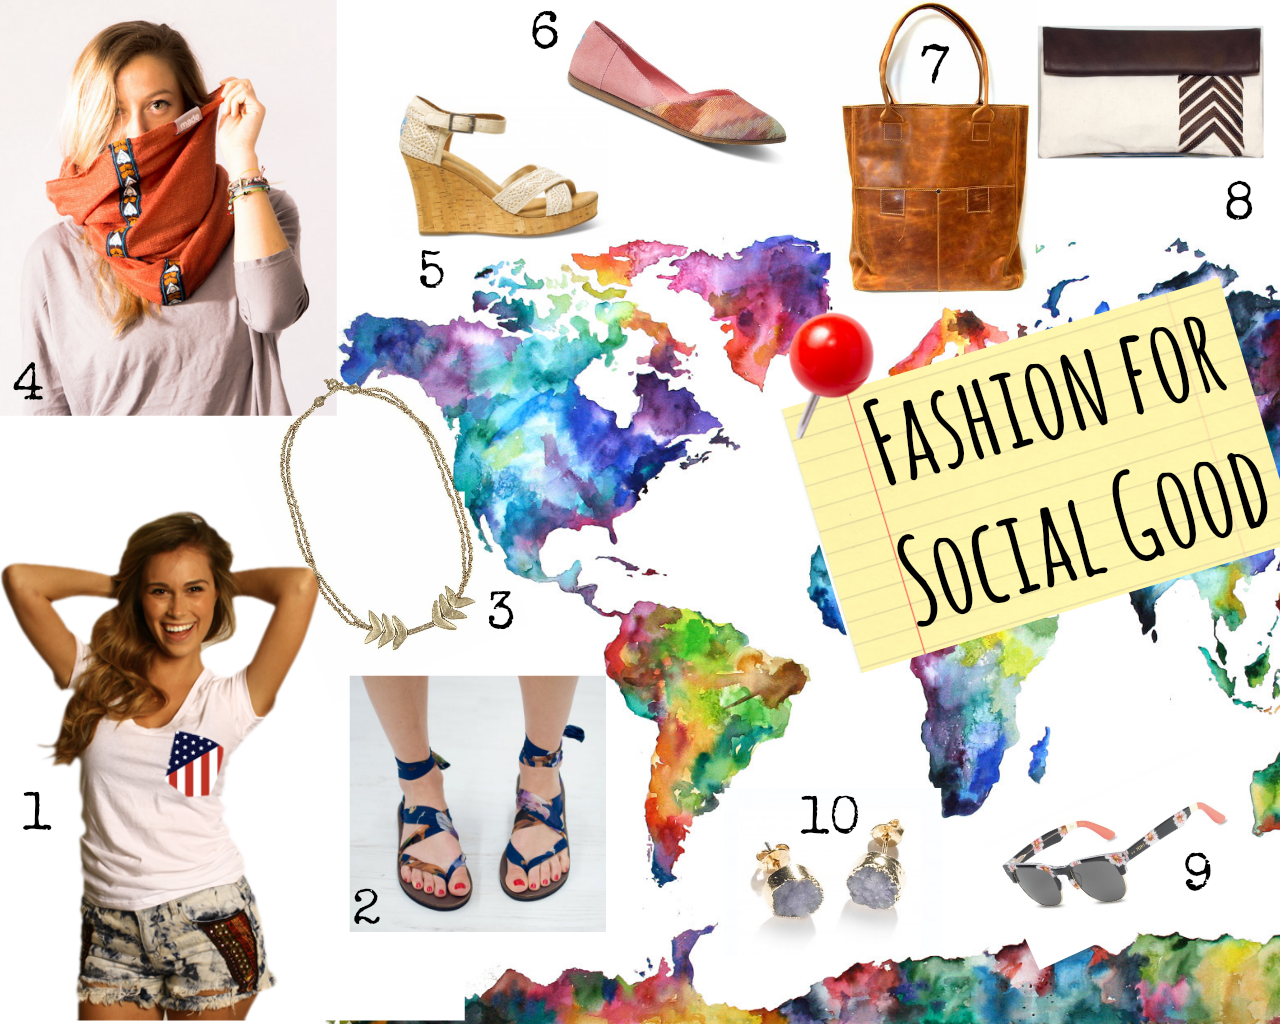 fashion, social good, causes, eco-friendly, style